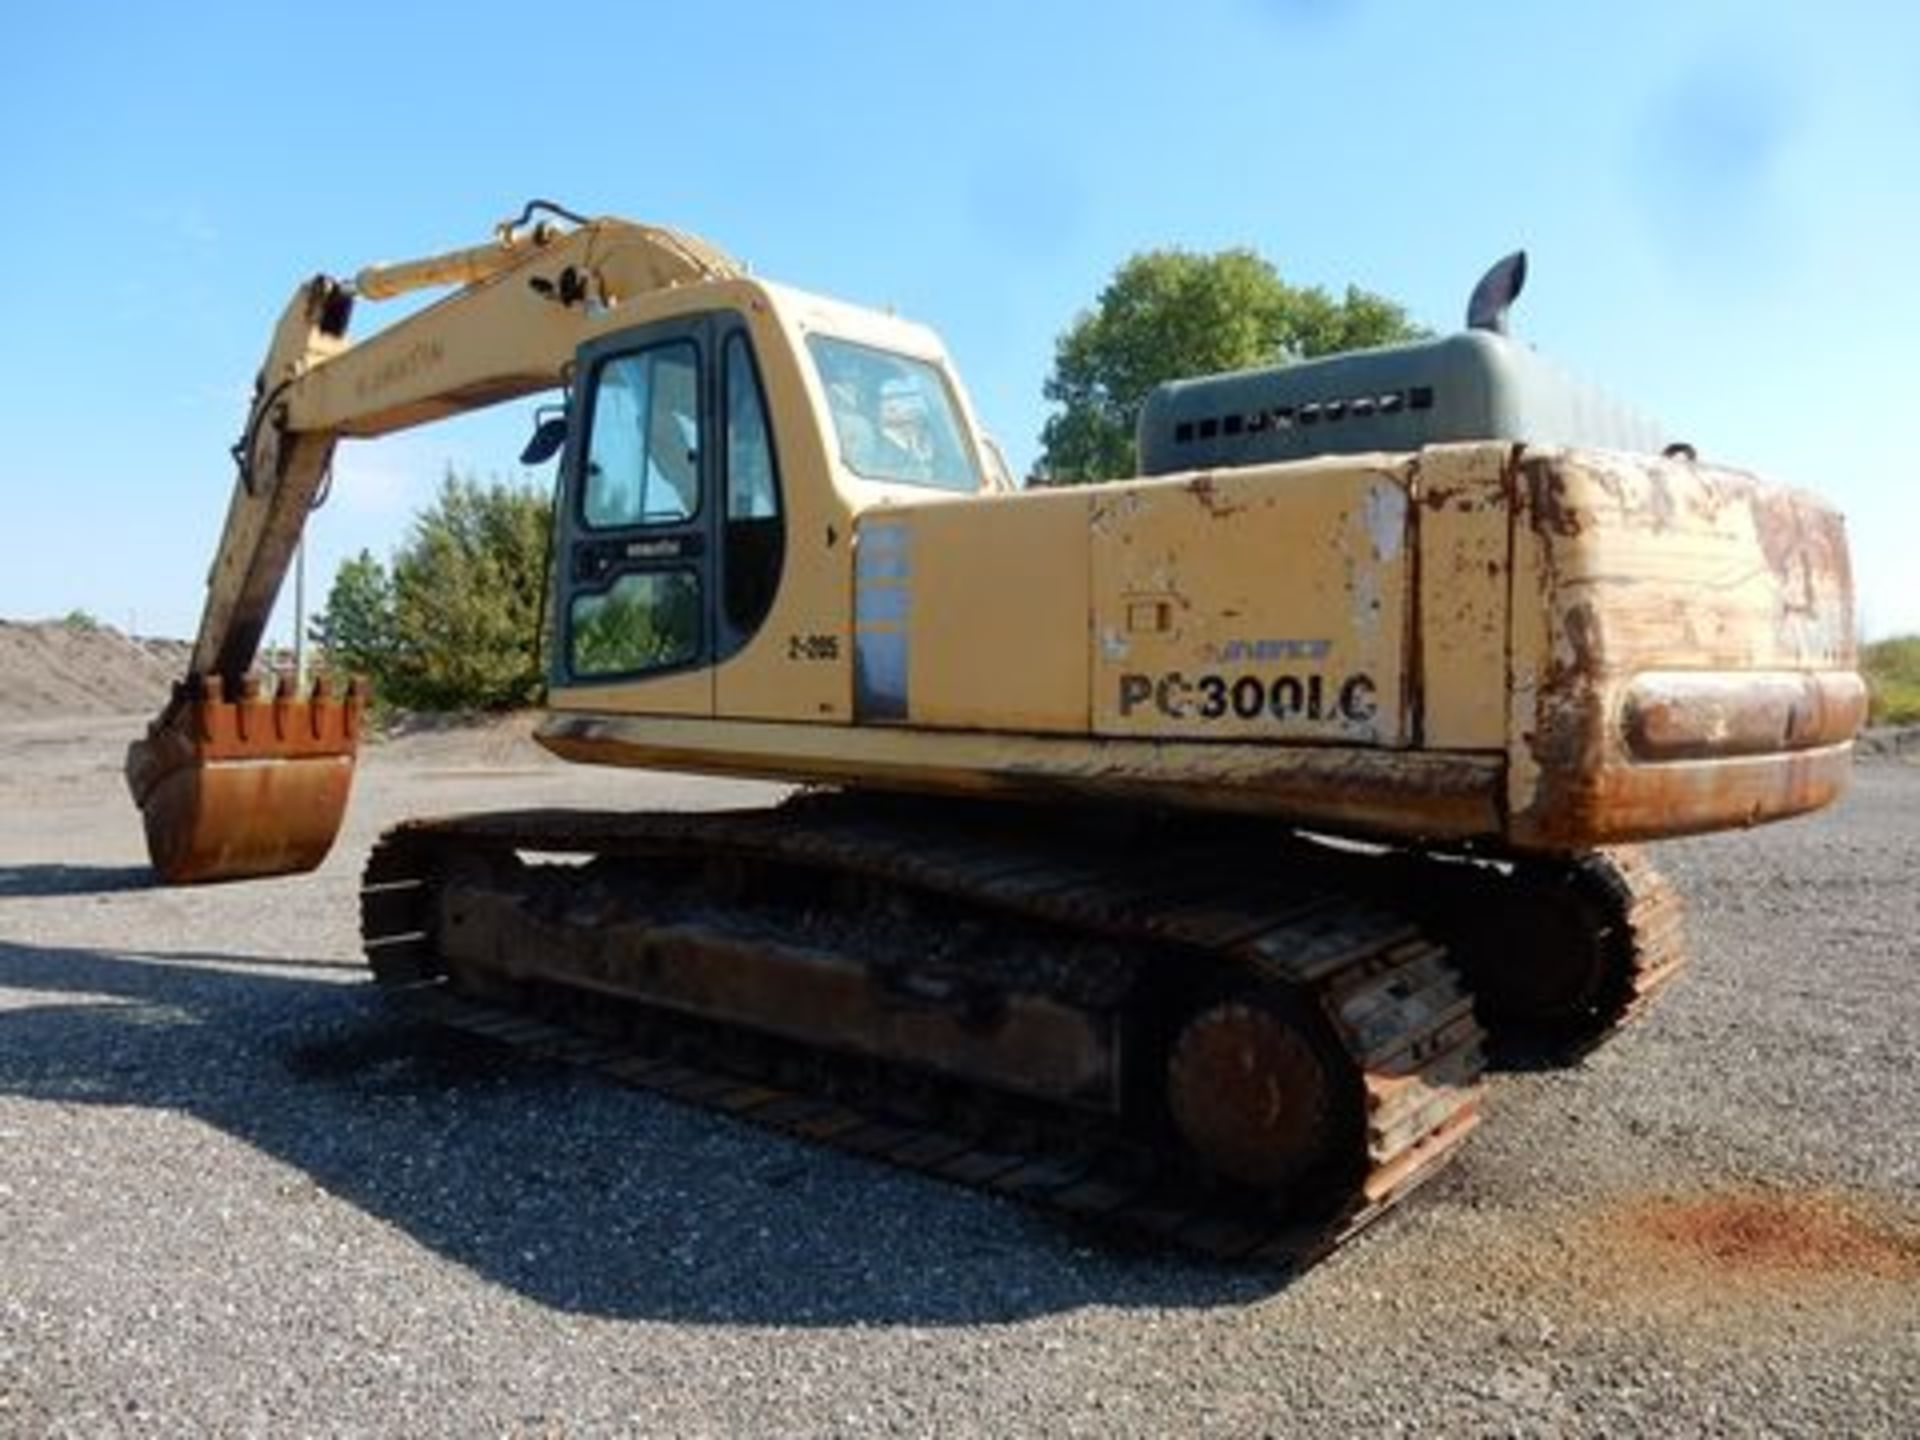 1997 KOMATSU EXCAVATOR, M# PC300LC-6LC, S/N A80735, HOURS N/A, 3-YD BUCKET, MISSING FRONT GLASS - Image 5 of 6